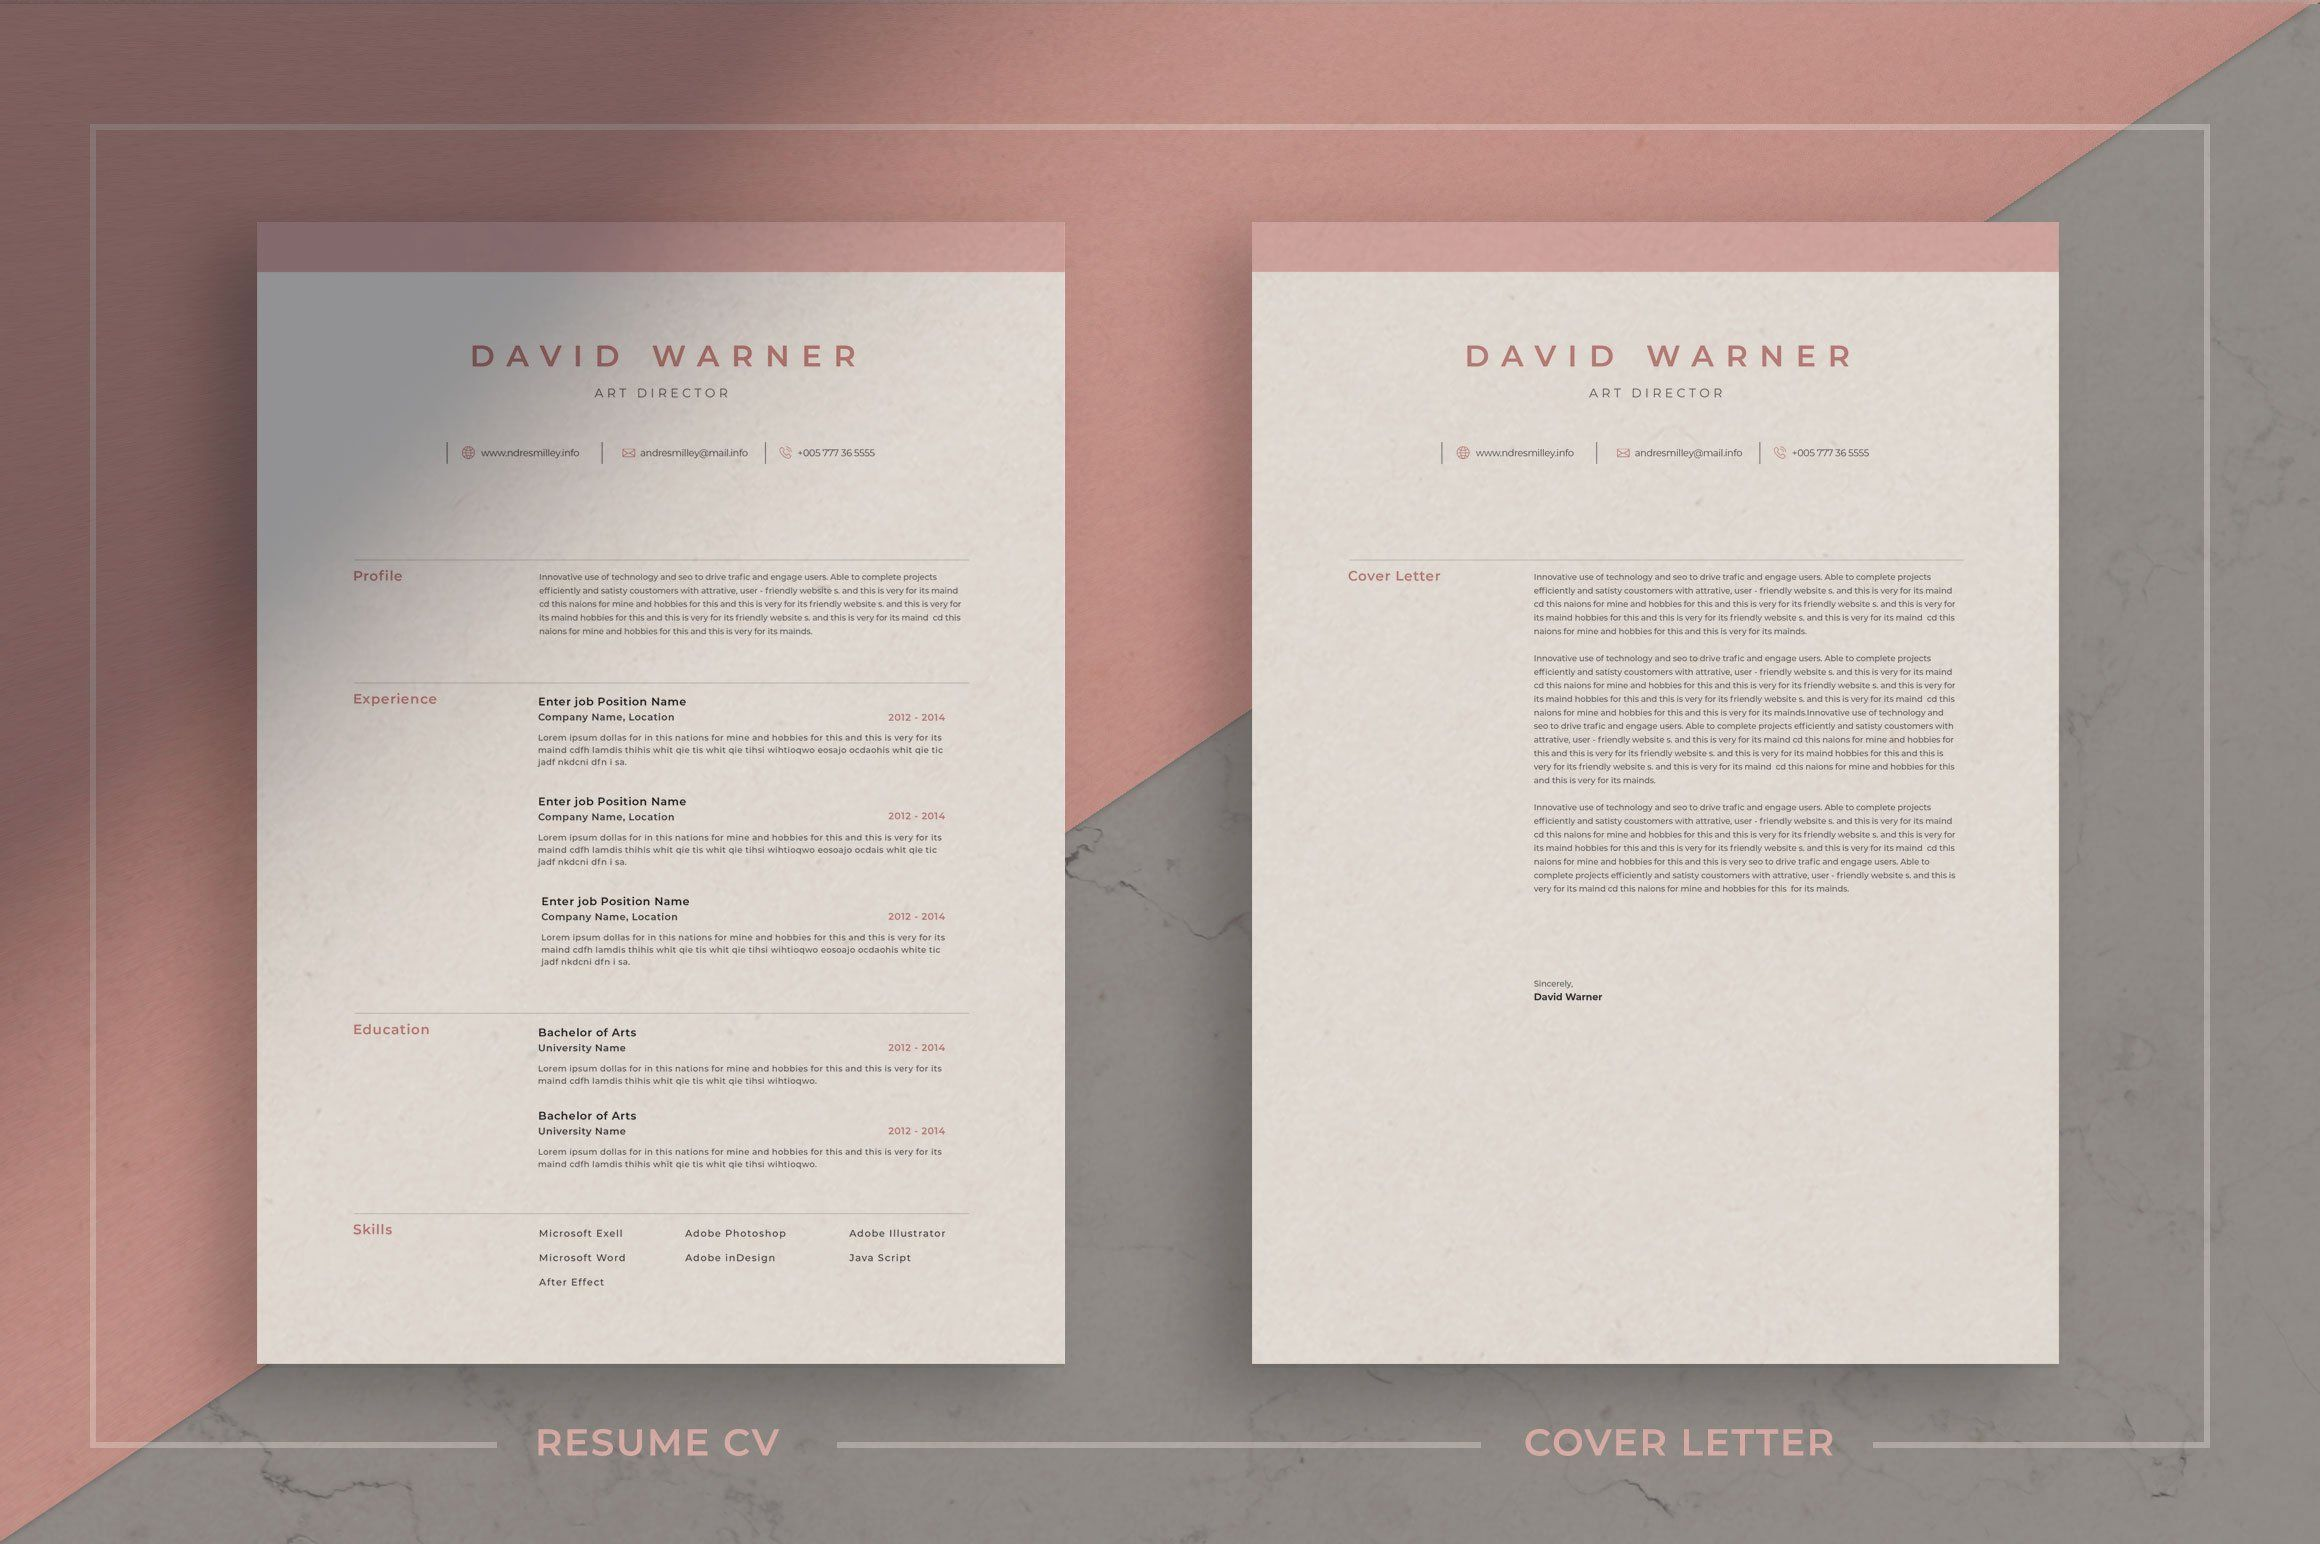 Resume  CV Template For those looking for a professional template David offers a skillfully crafted design plus matching cover letter including sample letter for a comple...